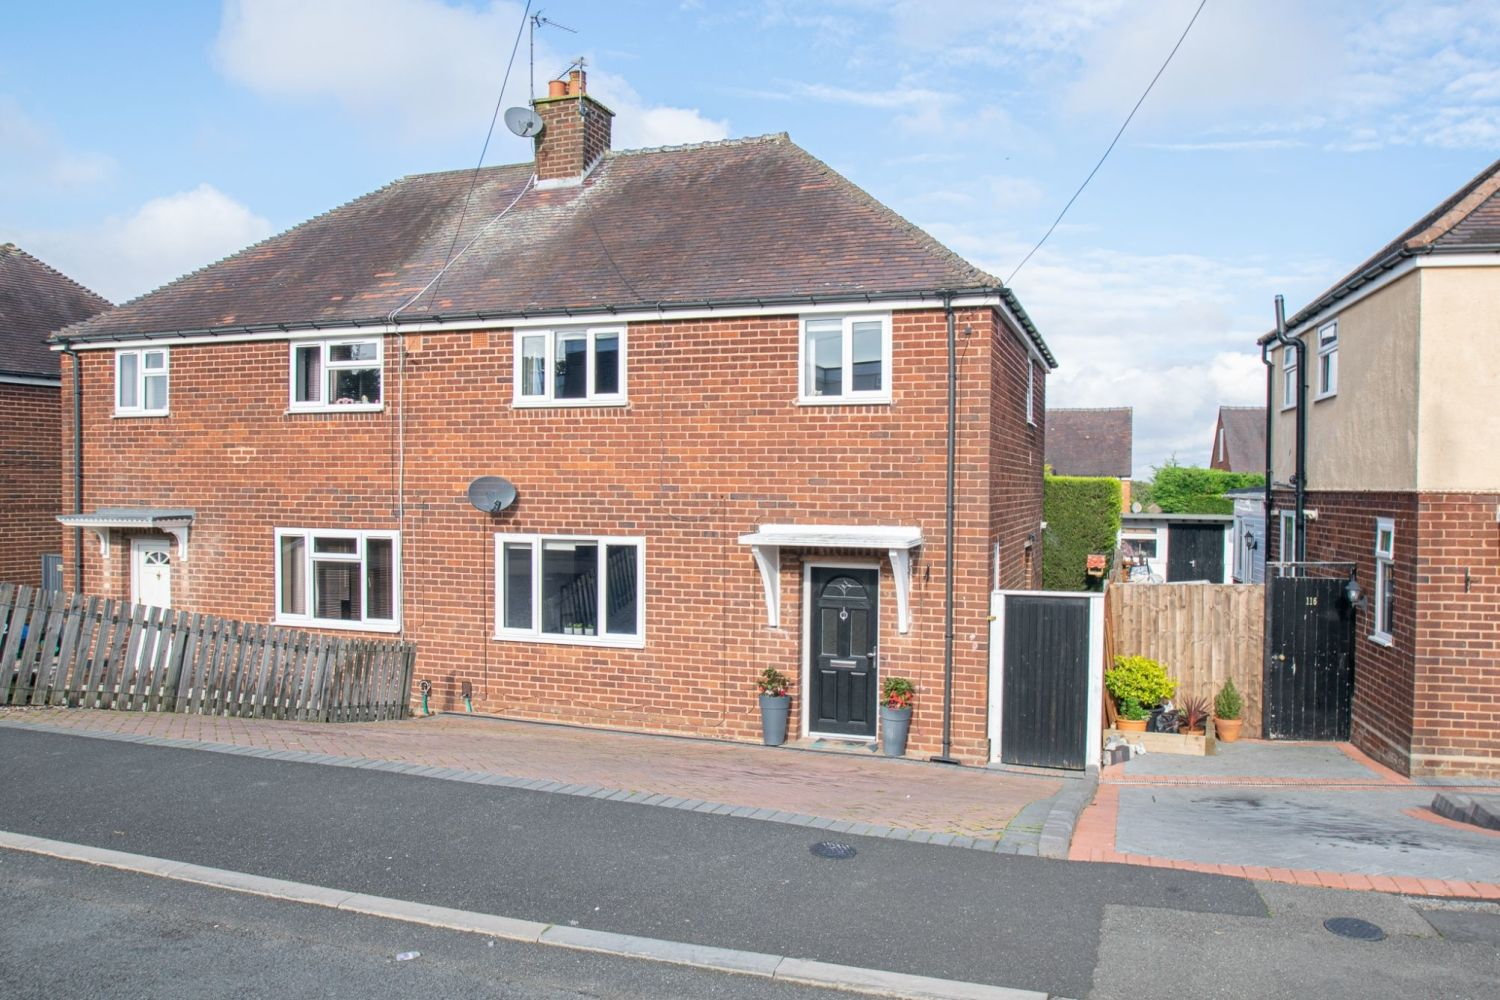 3 bed semi-detached for sale in Dobbins Oak Road, Wollescote  - Property Image 1